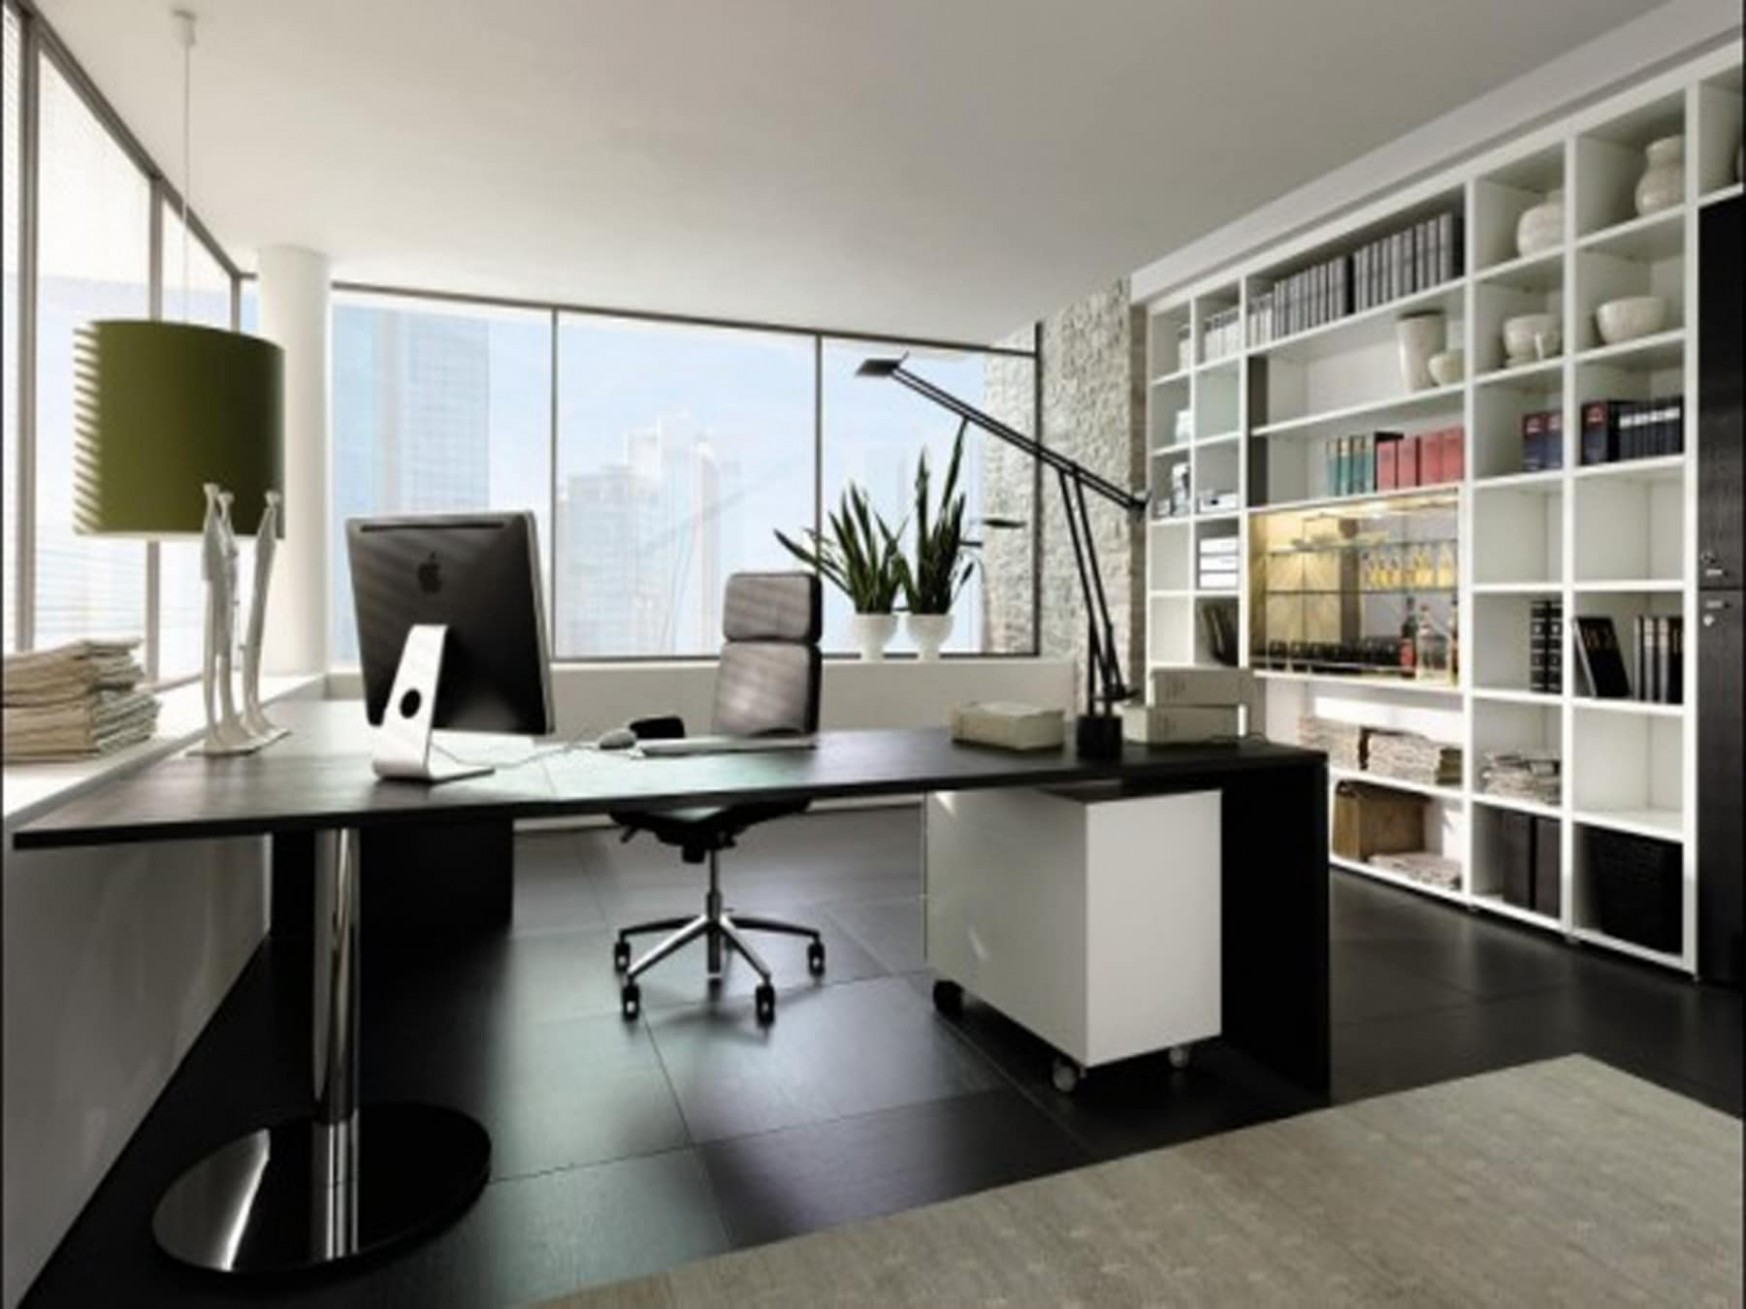 12+ Masculine Home Office Ideas & Inspirations  Man of Many - Home Office Ideas Male